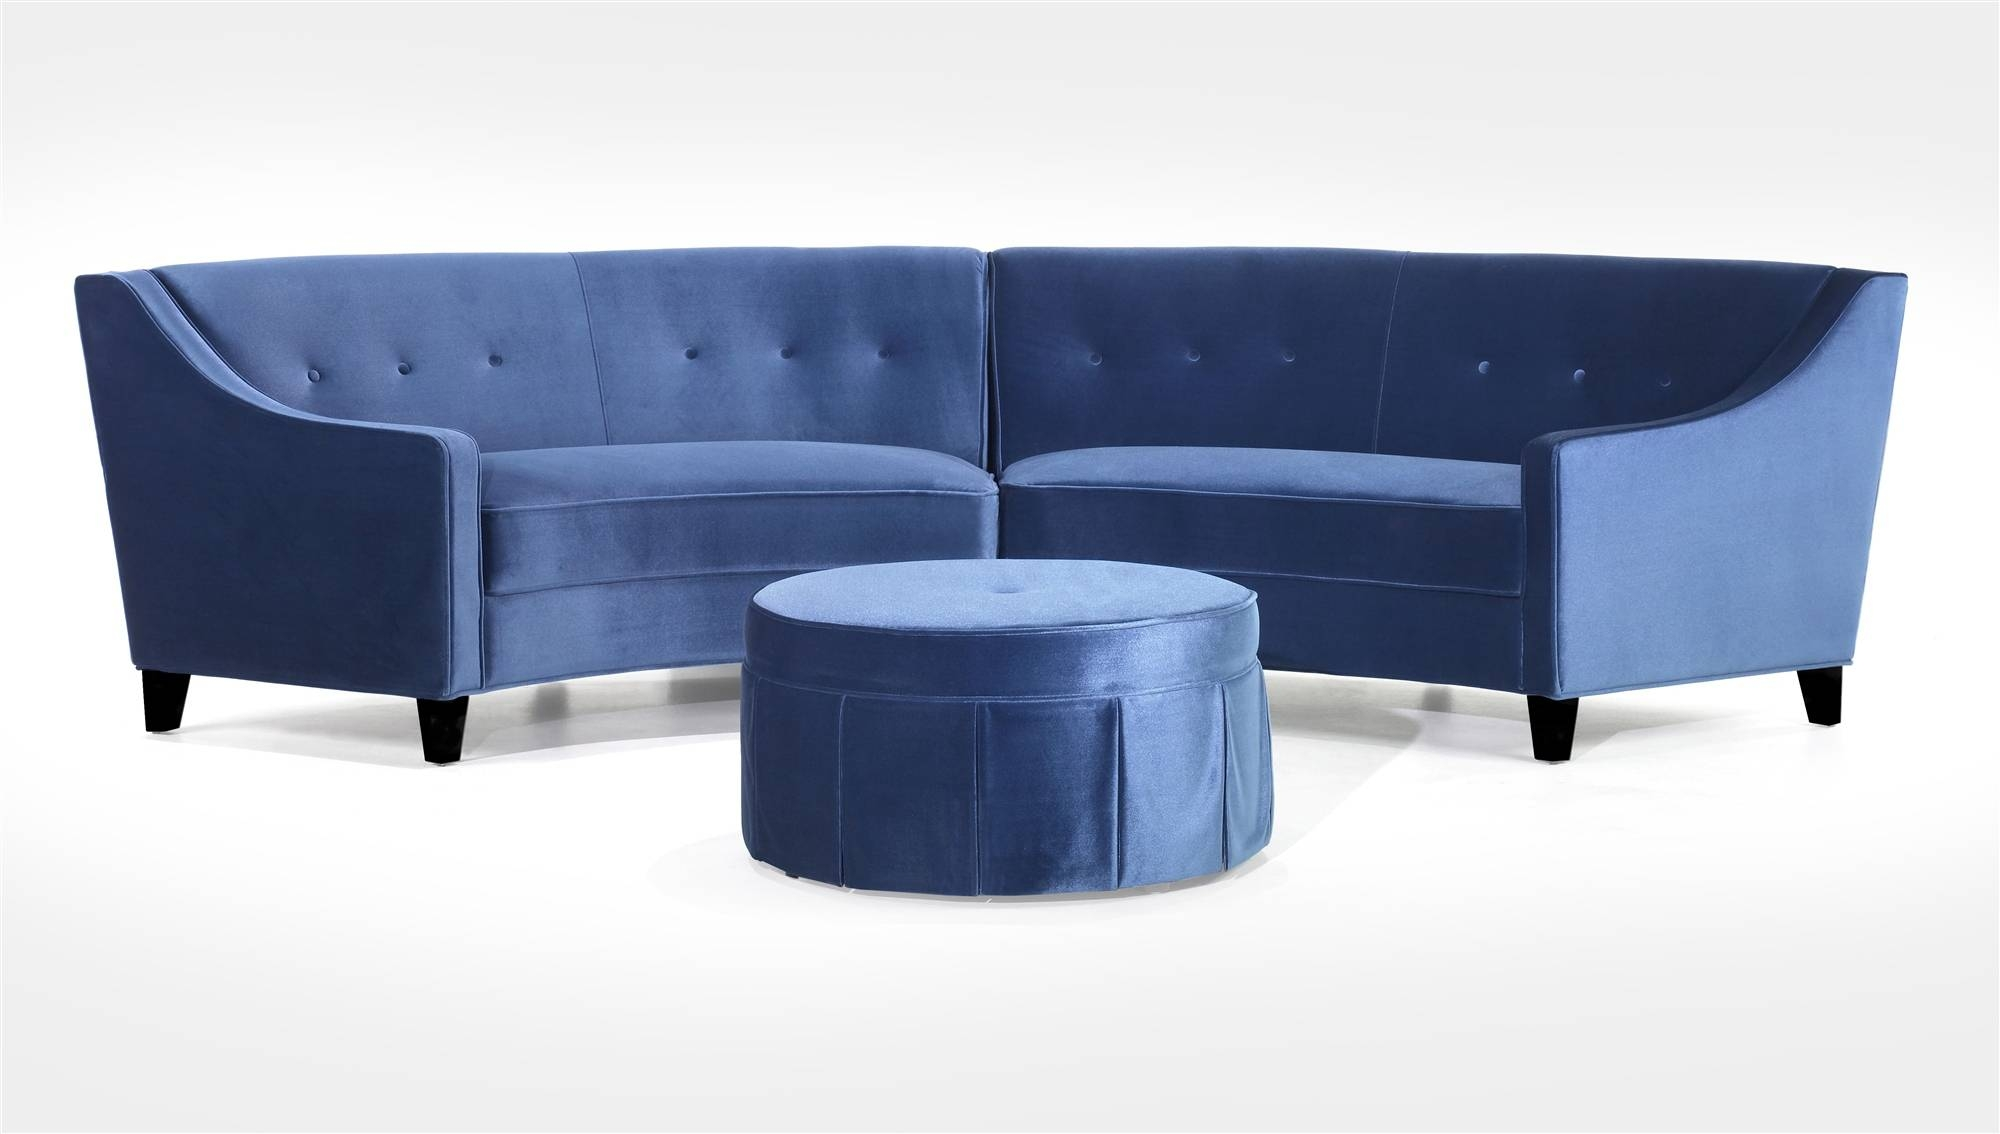 reclining sofas best sectional fabric blue of center sectionals navy excellent microfiber sofa royal